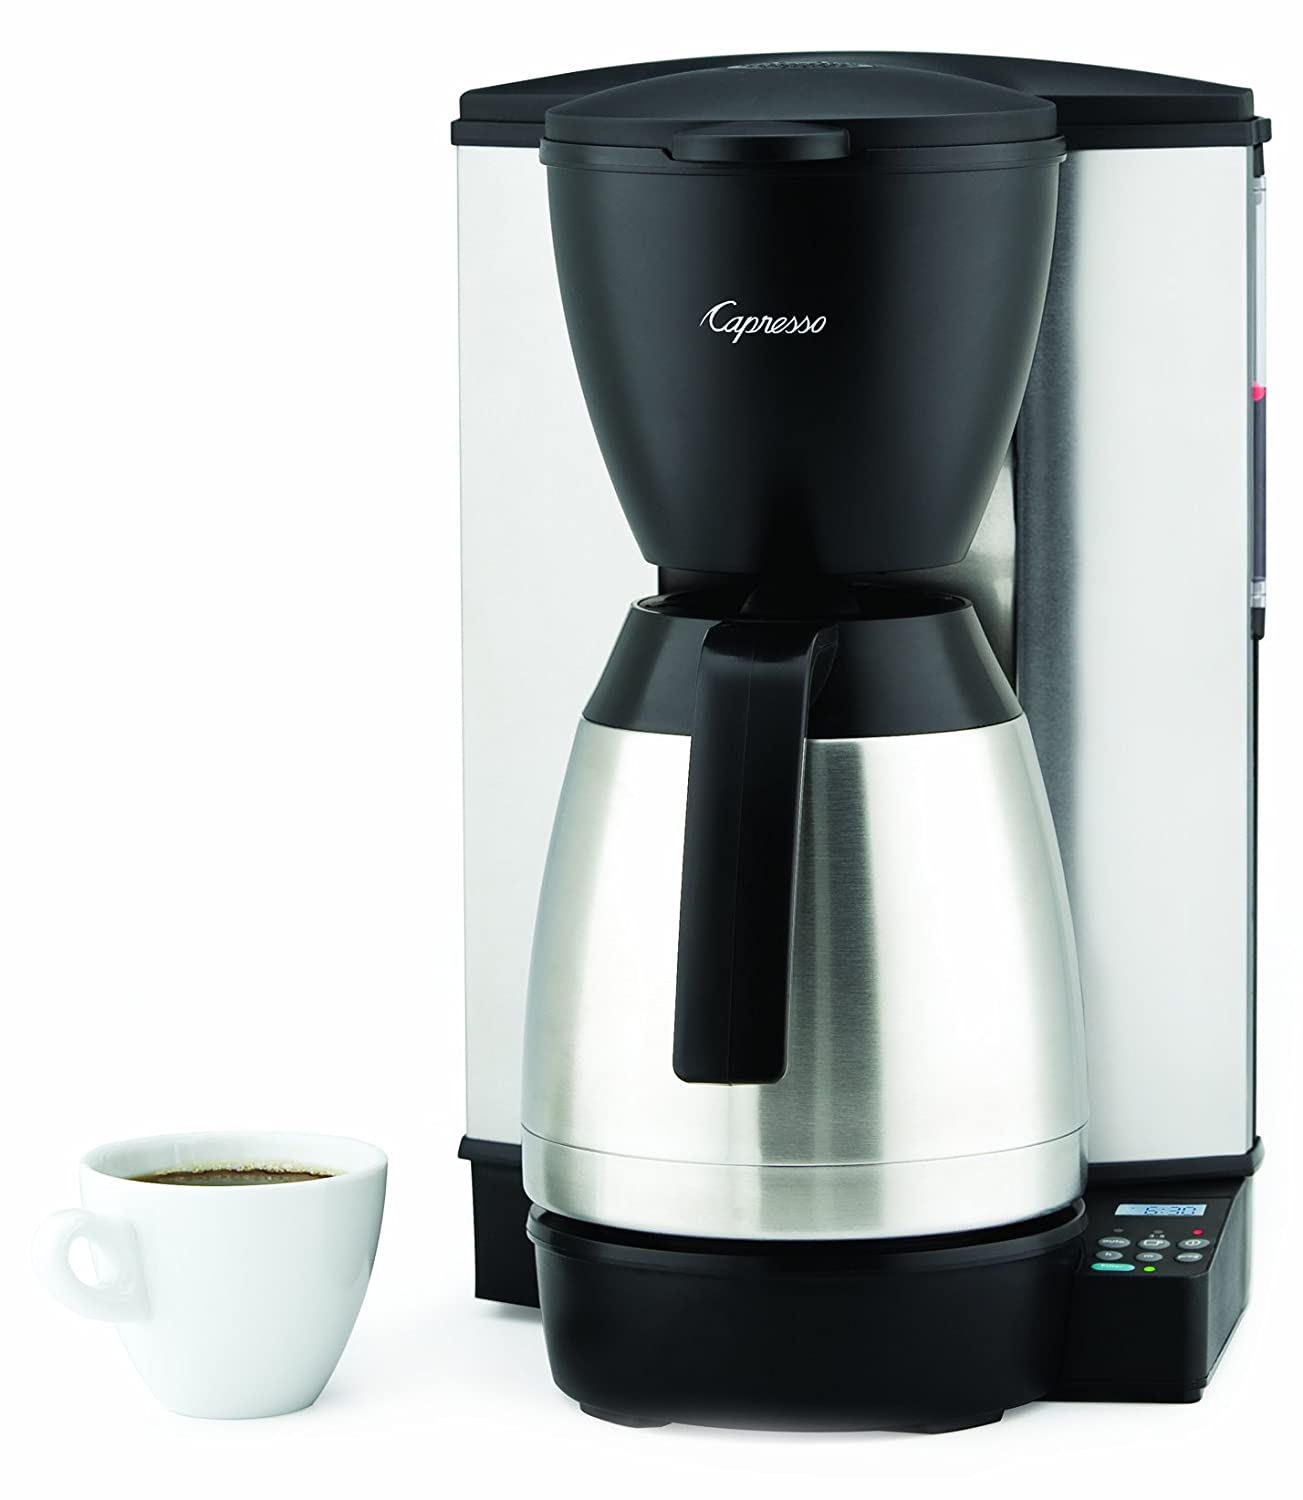 Amazon.com: capresso MT600 10-cup Cafetera programable con ...